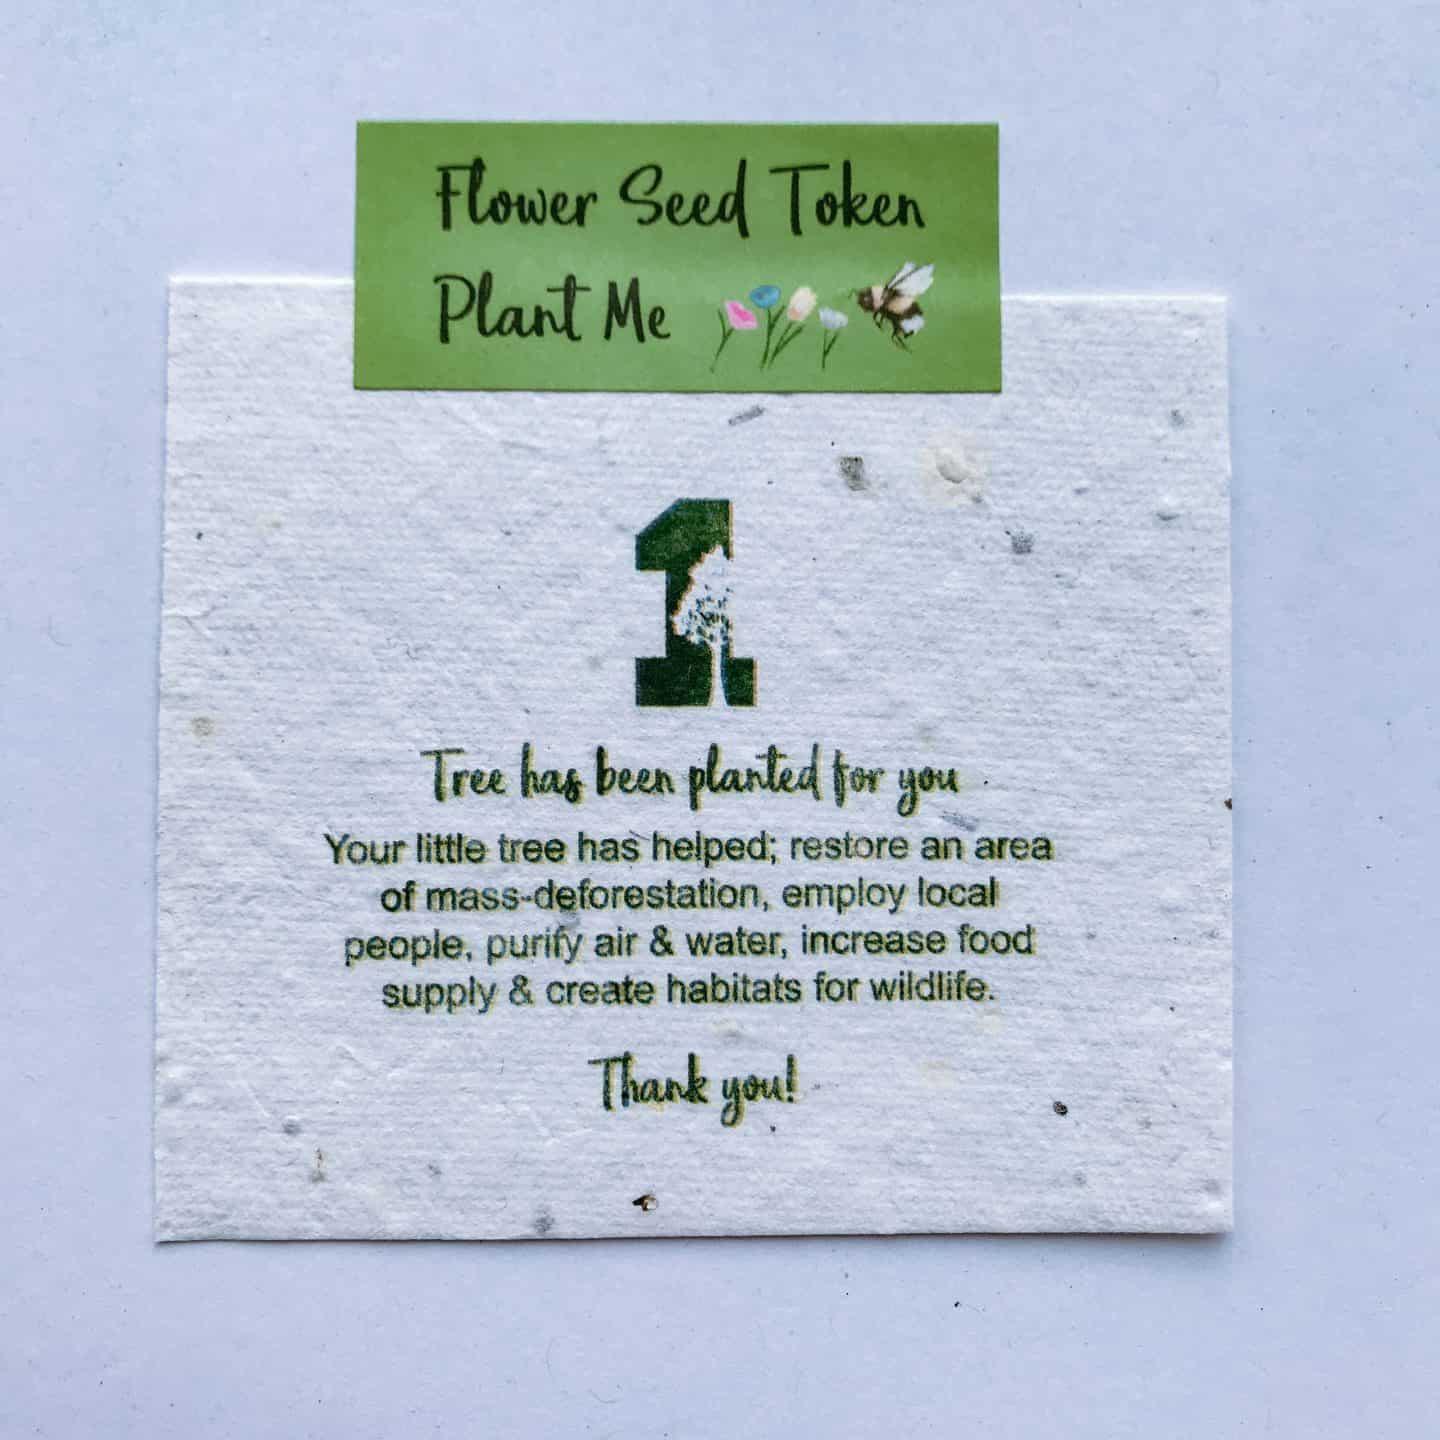 Seed token from a 1 Tree Cards eco friendly Christmas card